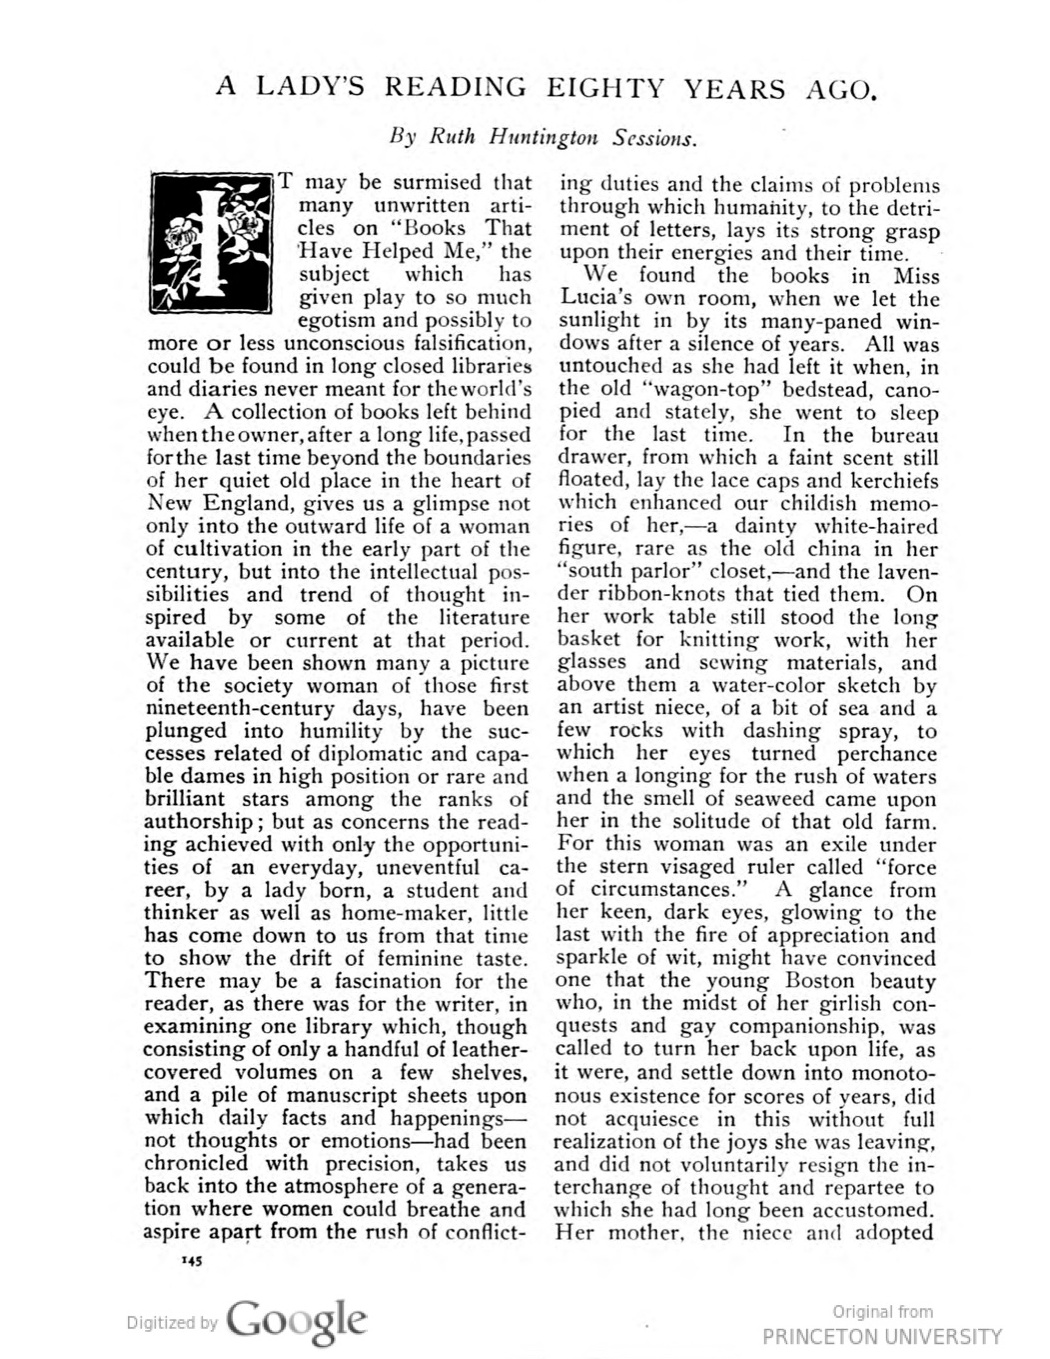 """To continue reading  """"A Lady's Reading Eighty Years Ago"""" click   HERE  or on the image of the page above . The story is printed on pages 145-153 of the October 1899 issue of  The New England Magazine  and has been digitized by Google from an original at University of Iowa. It can also be found in Box 126, Folder 43 of the Porter-Phelps-Huntington Family Papers on deposit at Amherst College."""